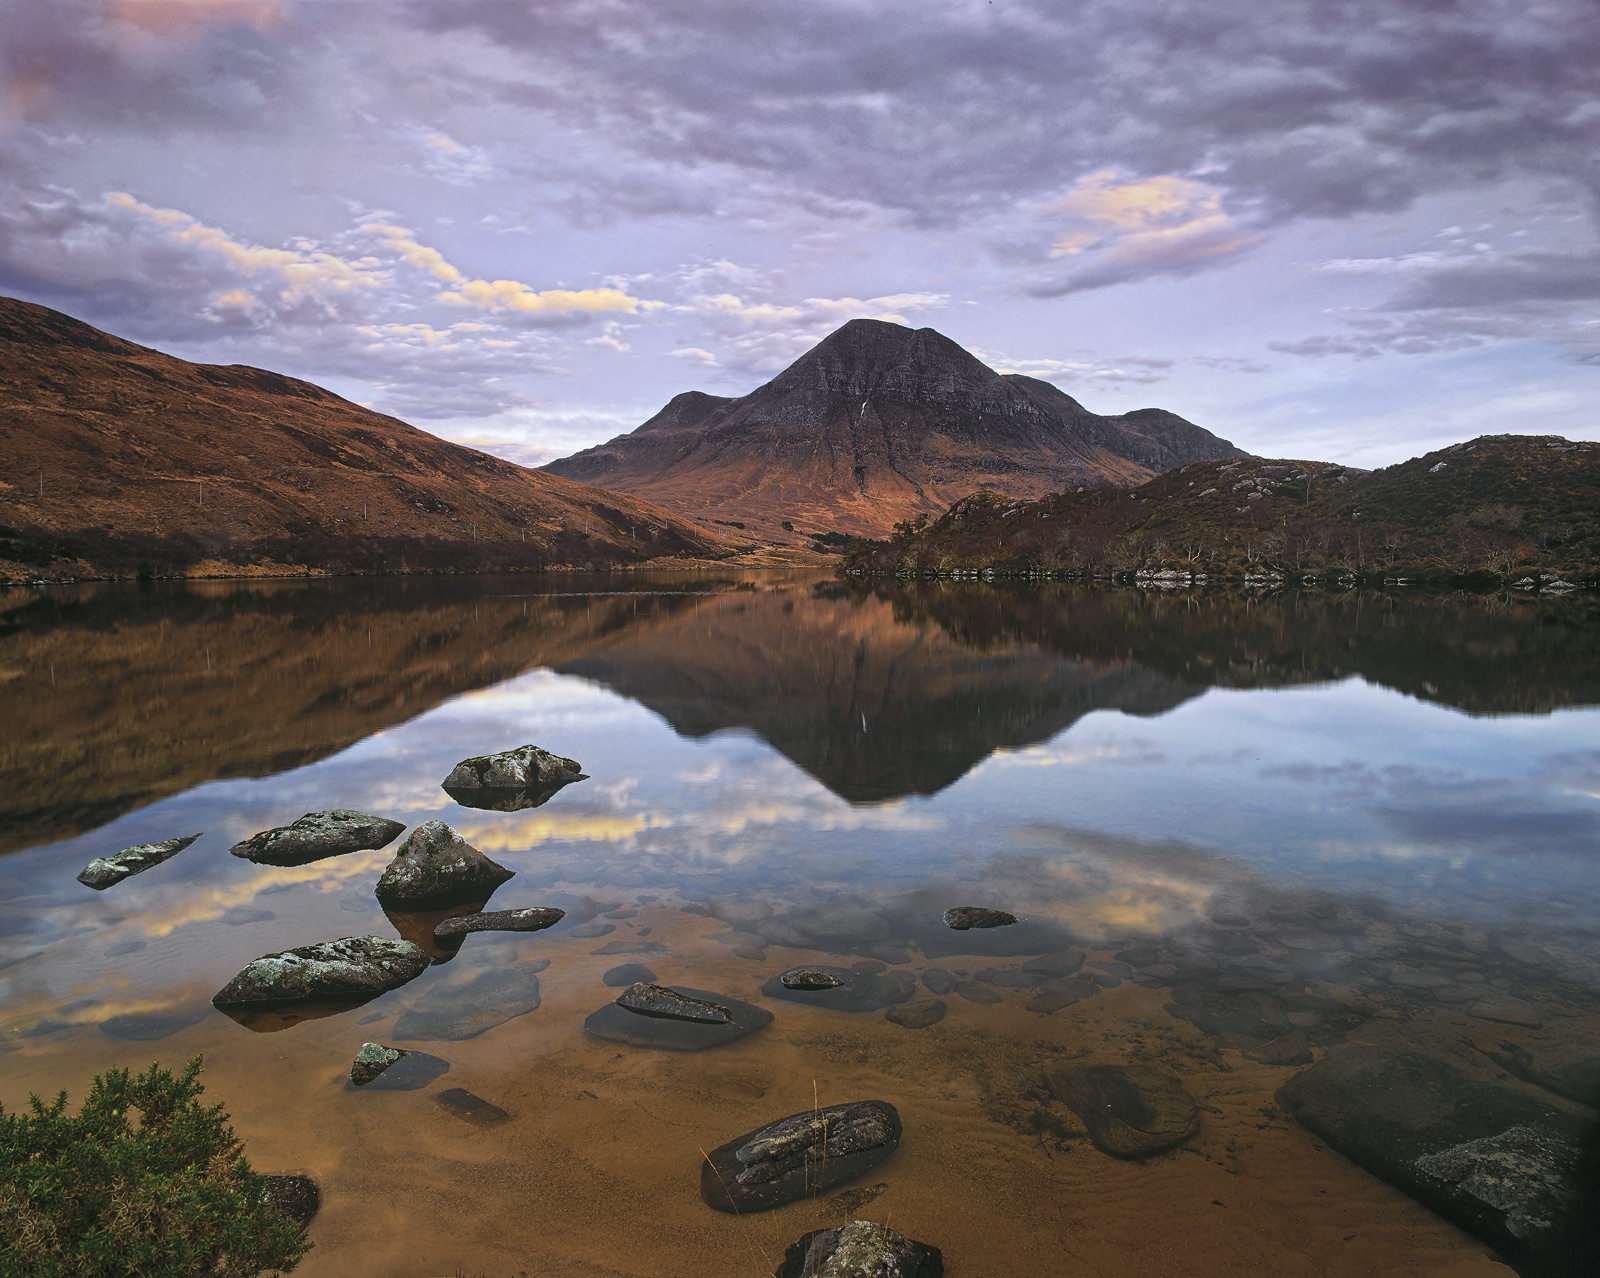 Cul Beag Reflection, Loch Lurgainn, Inverpolly, Scotland, still, autumnal, reflection, caramel, bedrock, mirror, sunset , photo